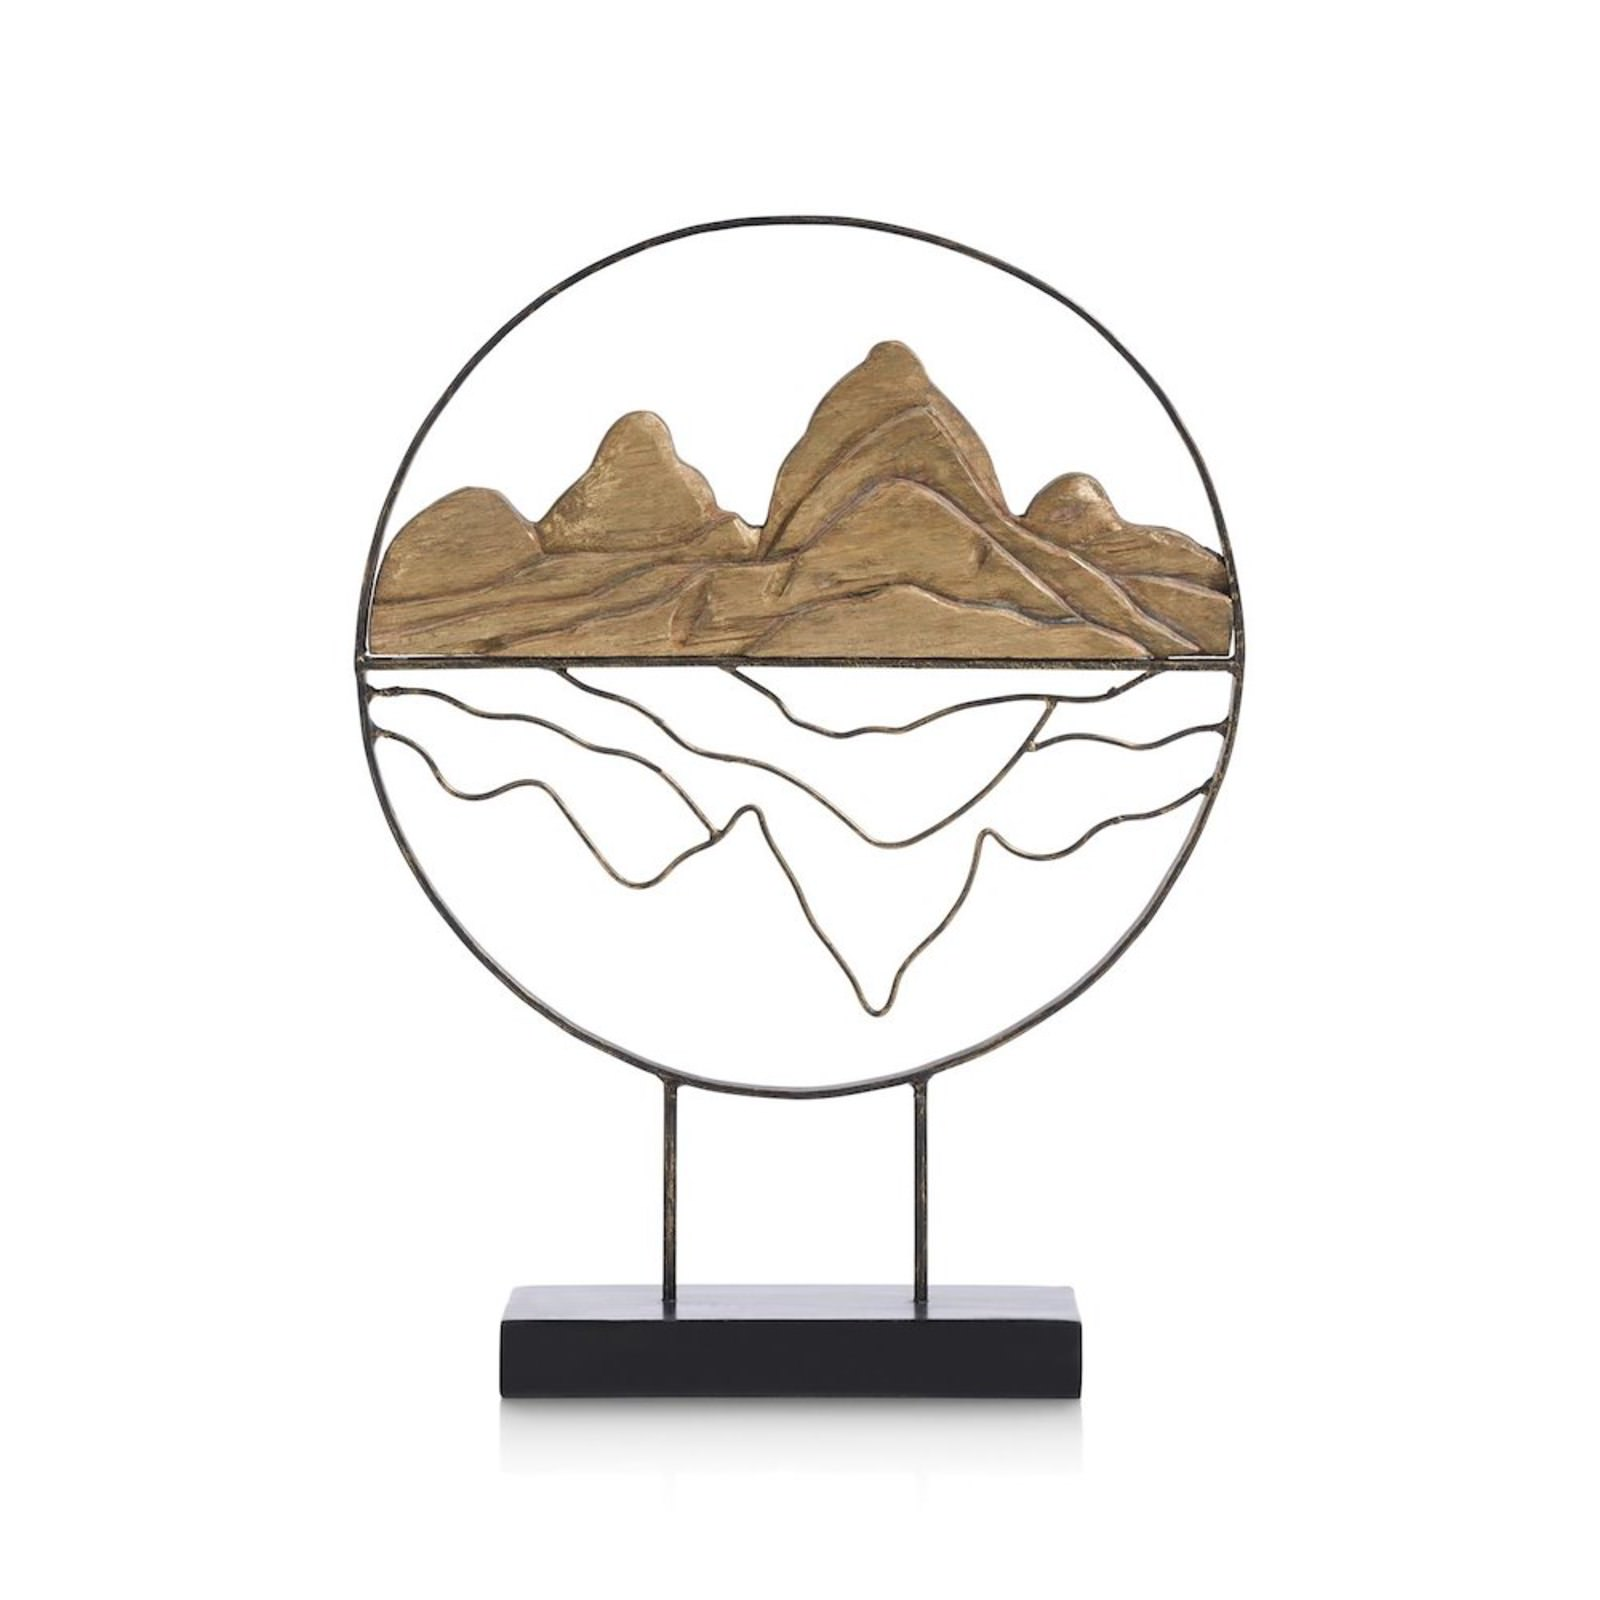 SKULPTURE MOUNTAINS H 52 CM